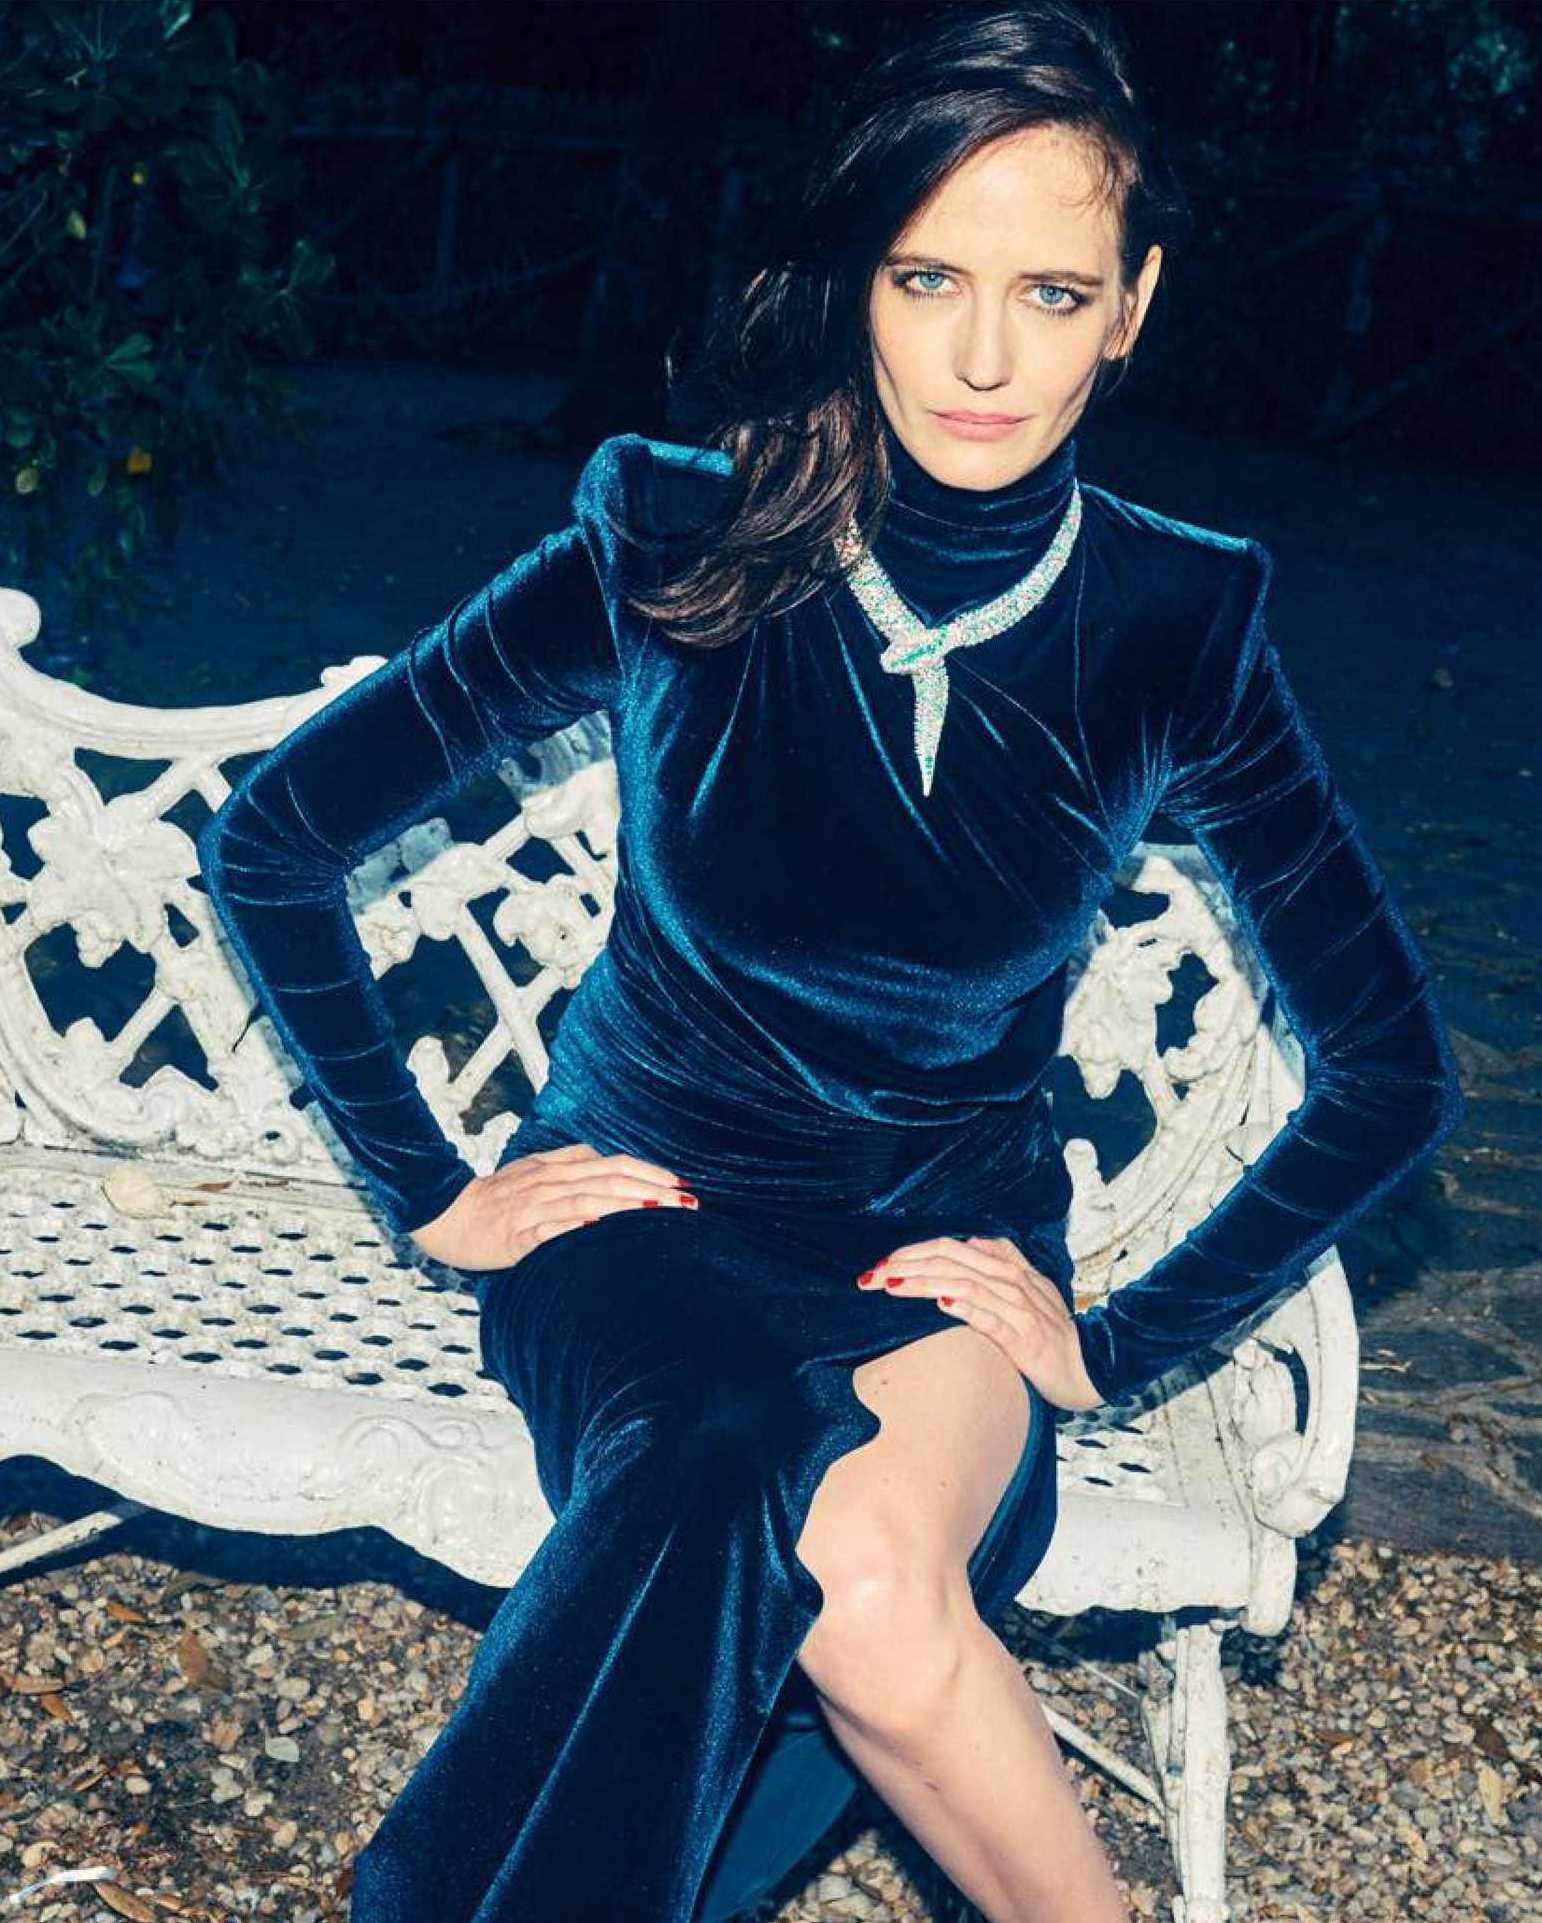 Eva-Green-Madame-Figaro-November-20186d02d91026353374.jpg